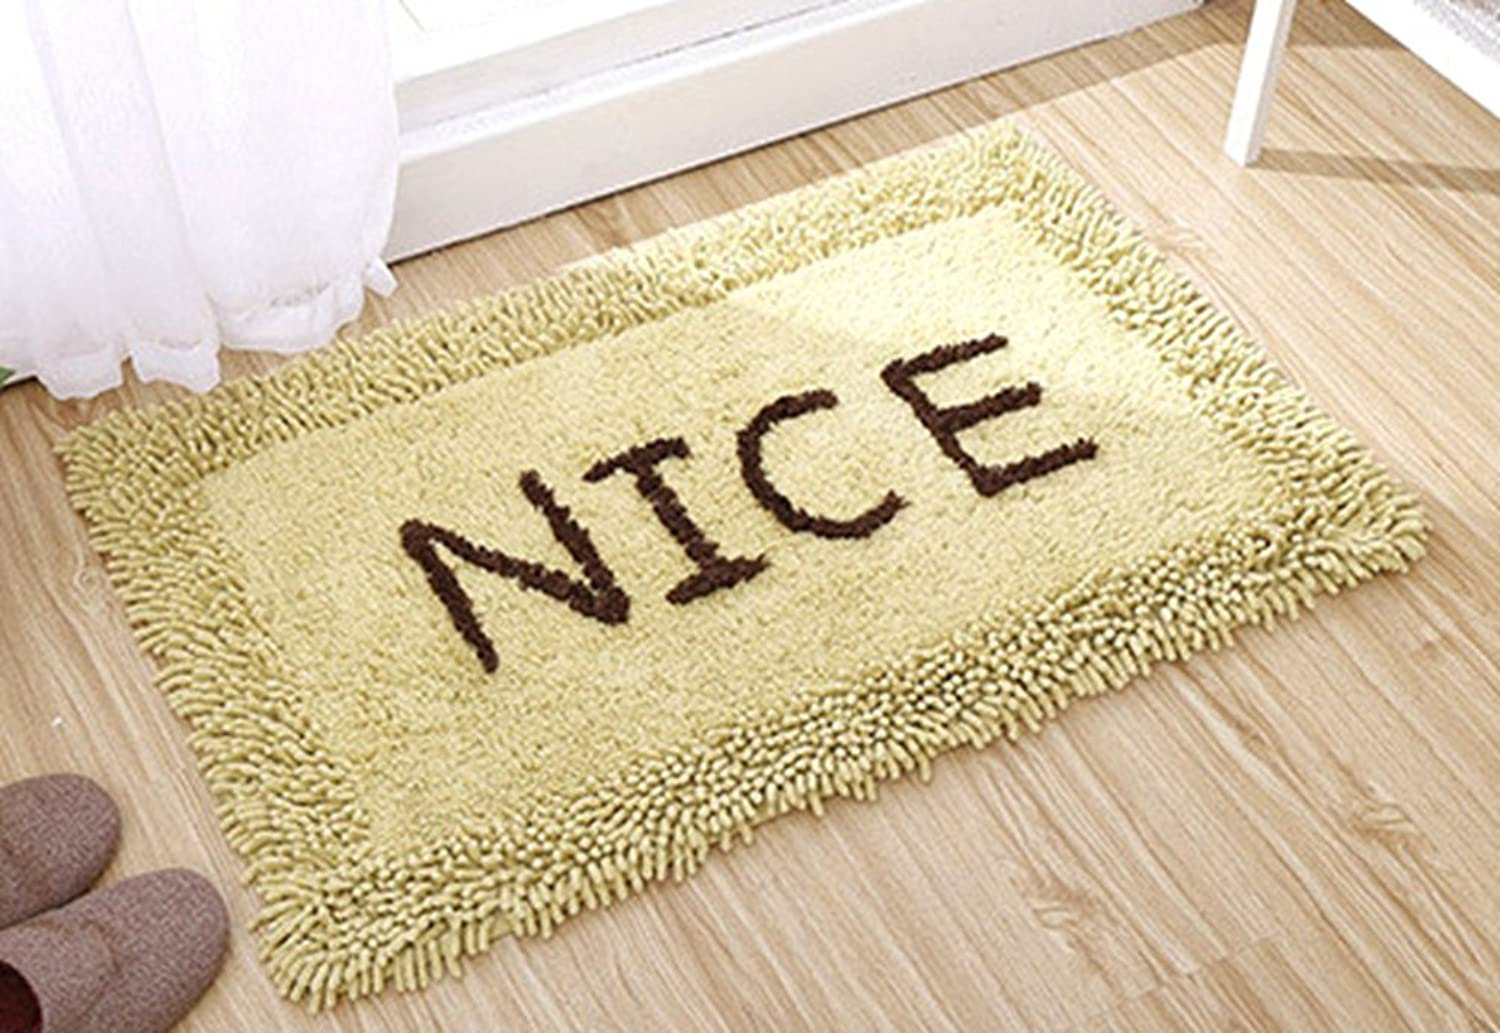 Multi-Size Terry Area Door Mat Floor Rug Runner Non-Slip LivebyCare Cotton Chenille Doormat Entry Carpet Decor Front Entrance Indoor Outdoor Mats for Rest Room Presence Chamber